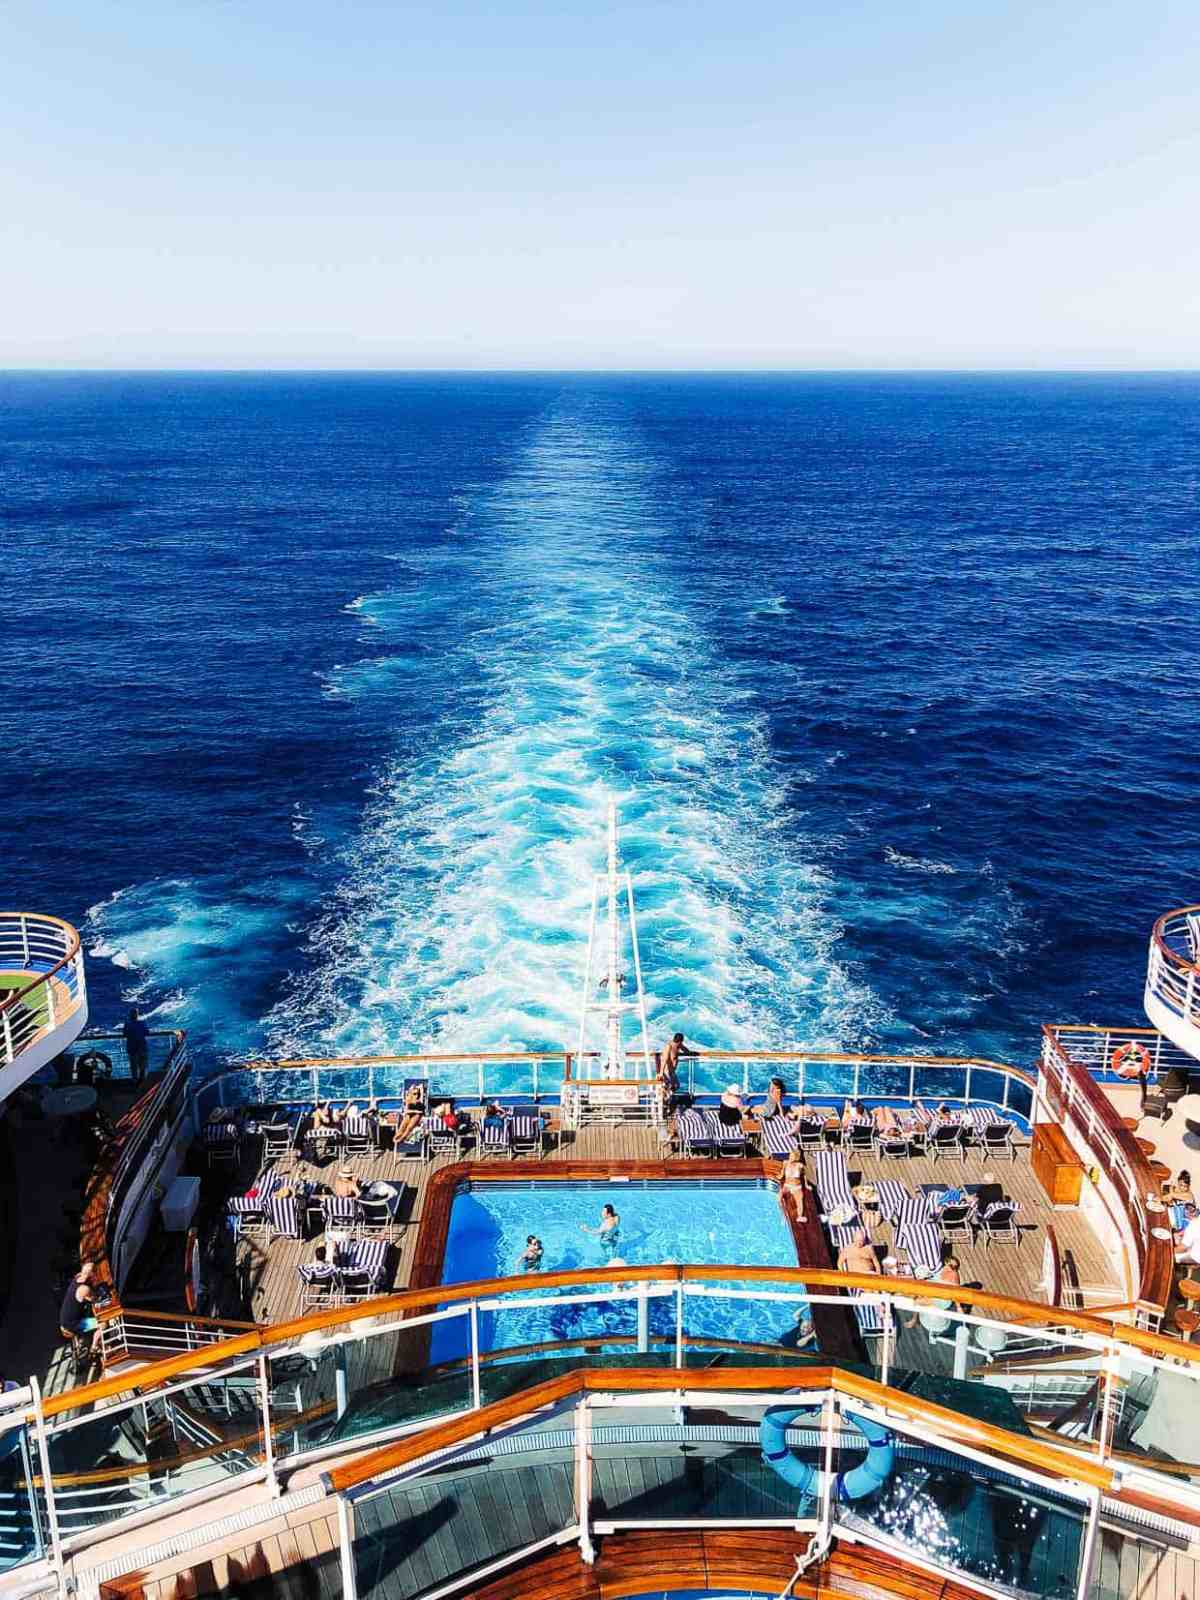 The on board view while cruising the Mexican Riviera with Princess Cruises.